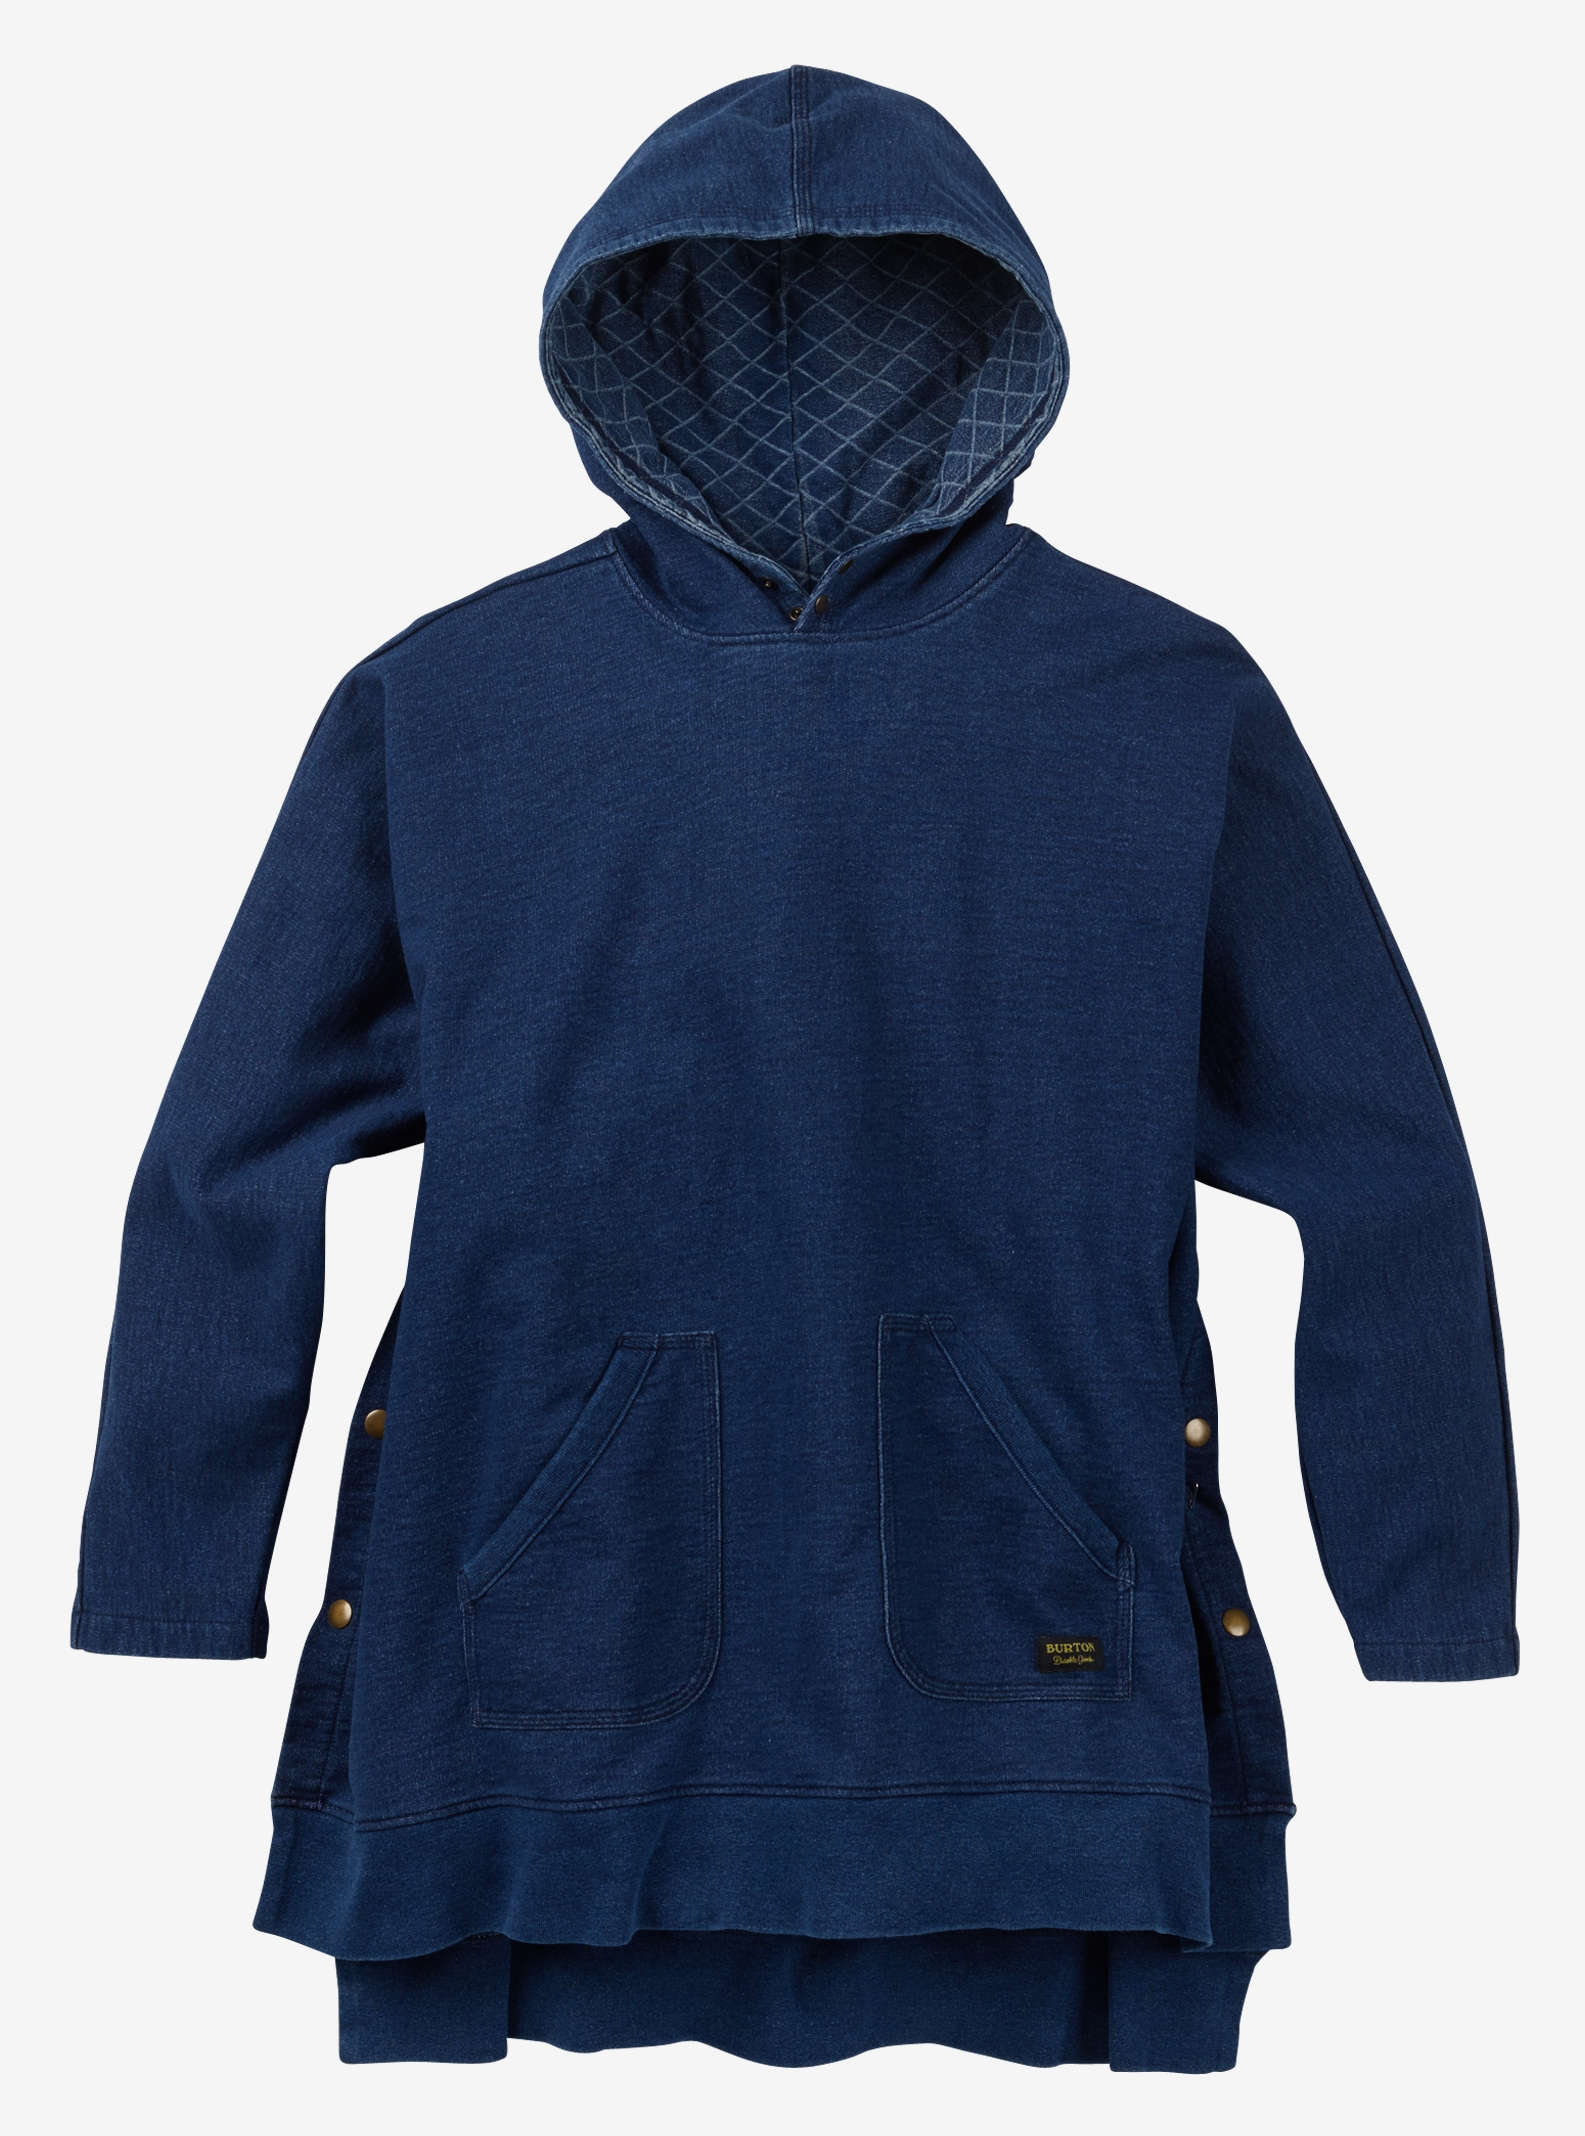 Burton Noonmark Poncho shown in Indigo